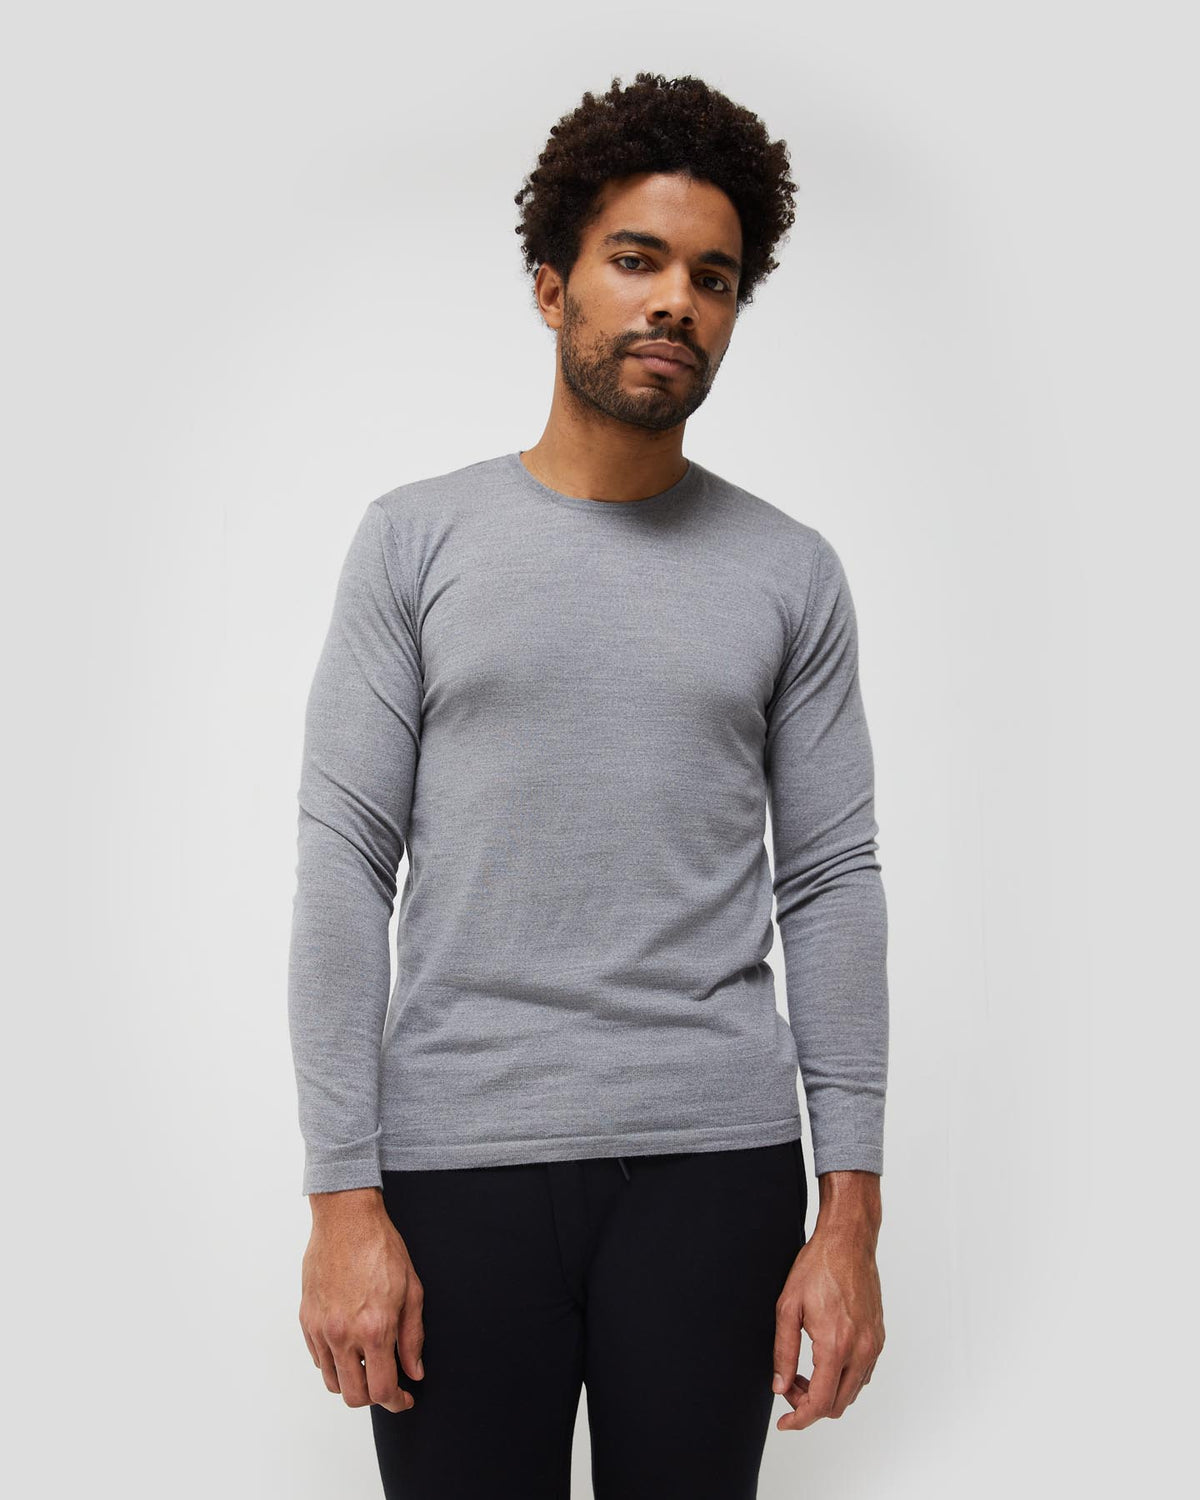 Agostino 2.0 Long Sleeve Wool Cashmere Blend Unisex T-Shirt